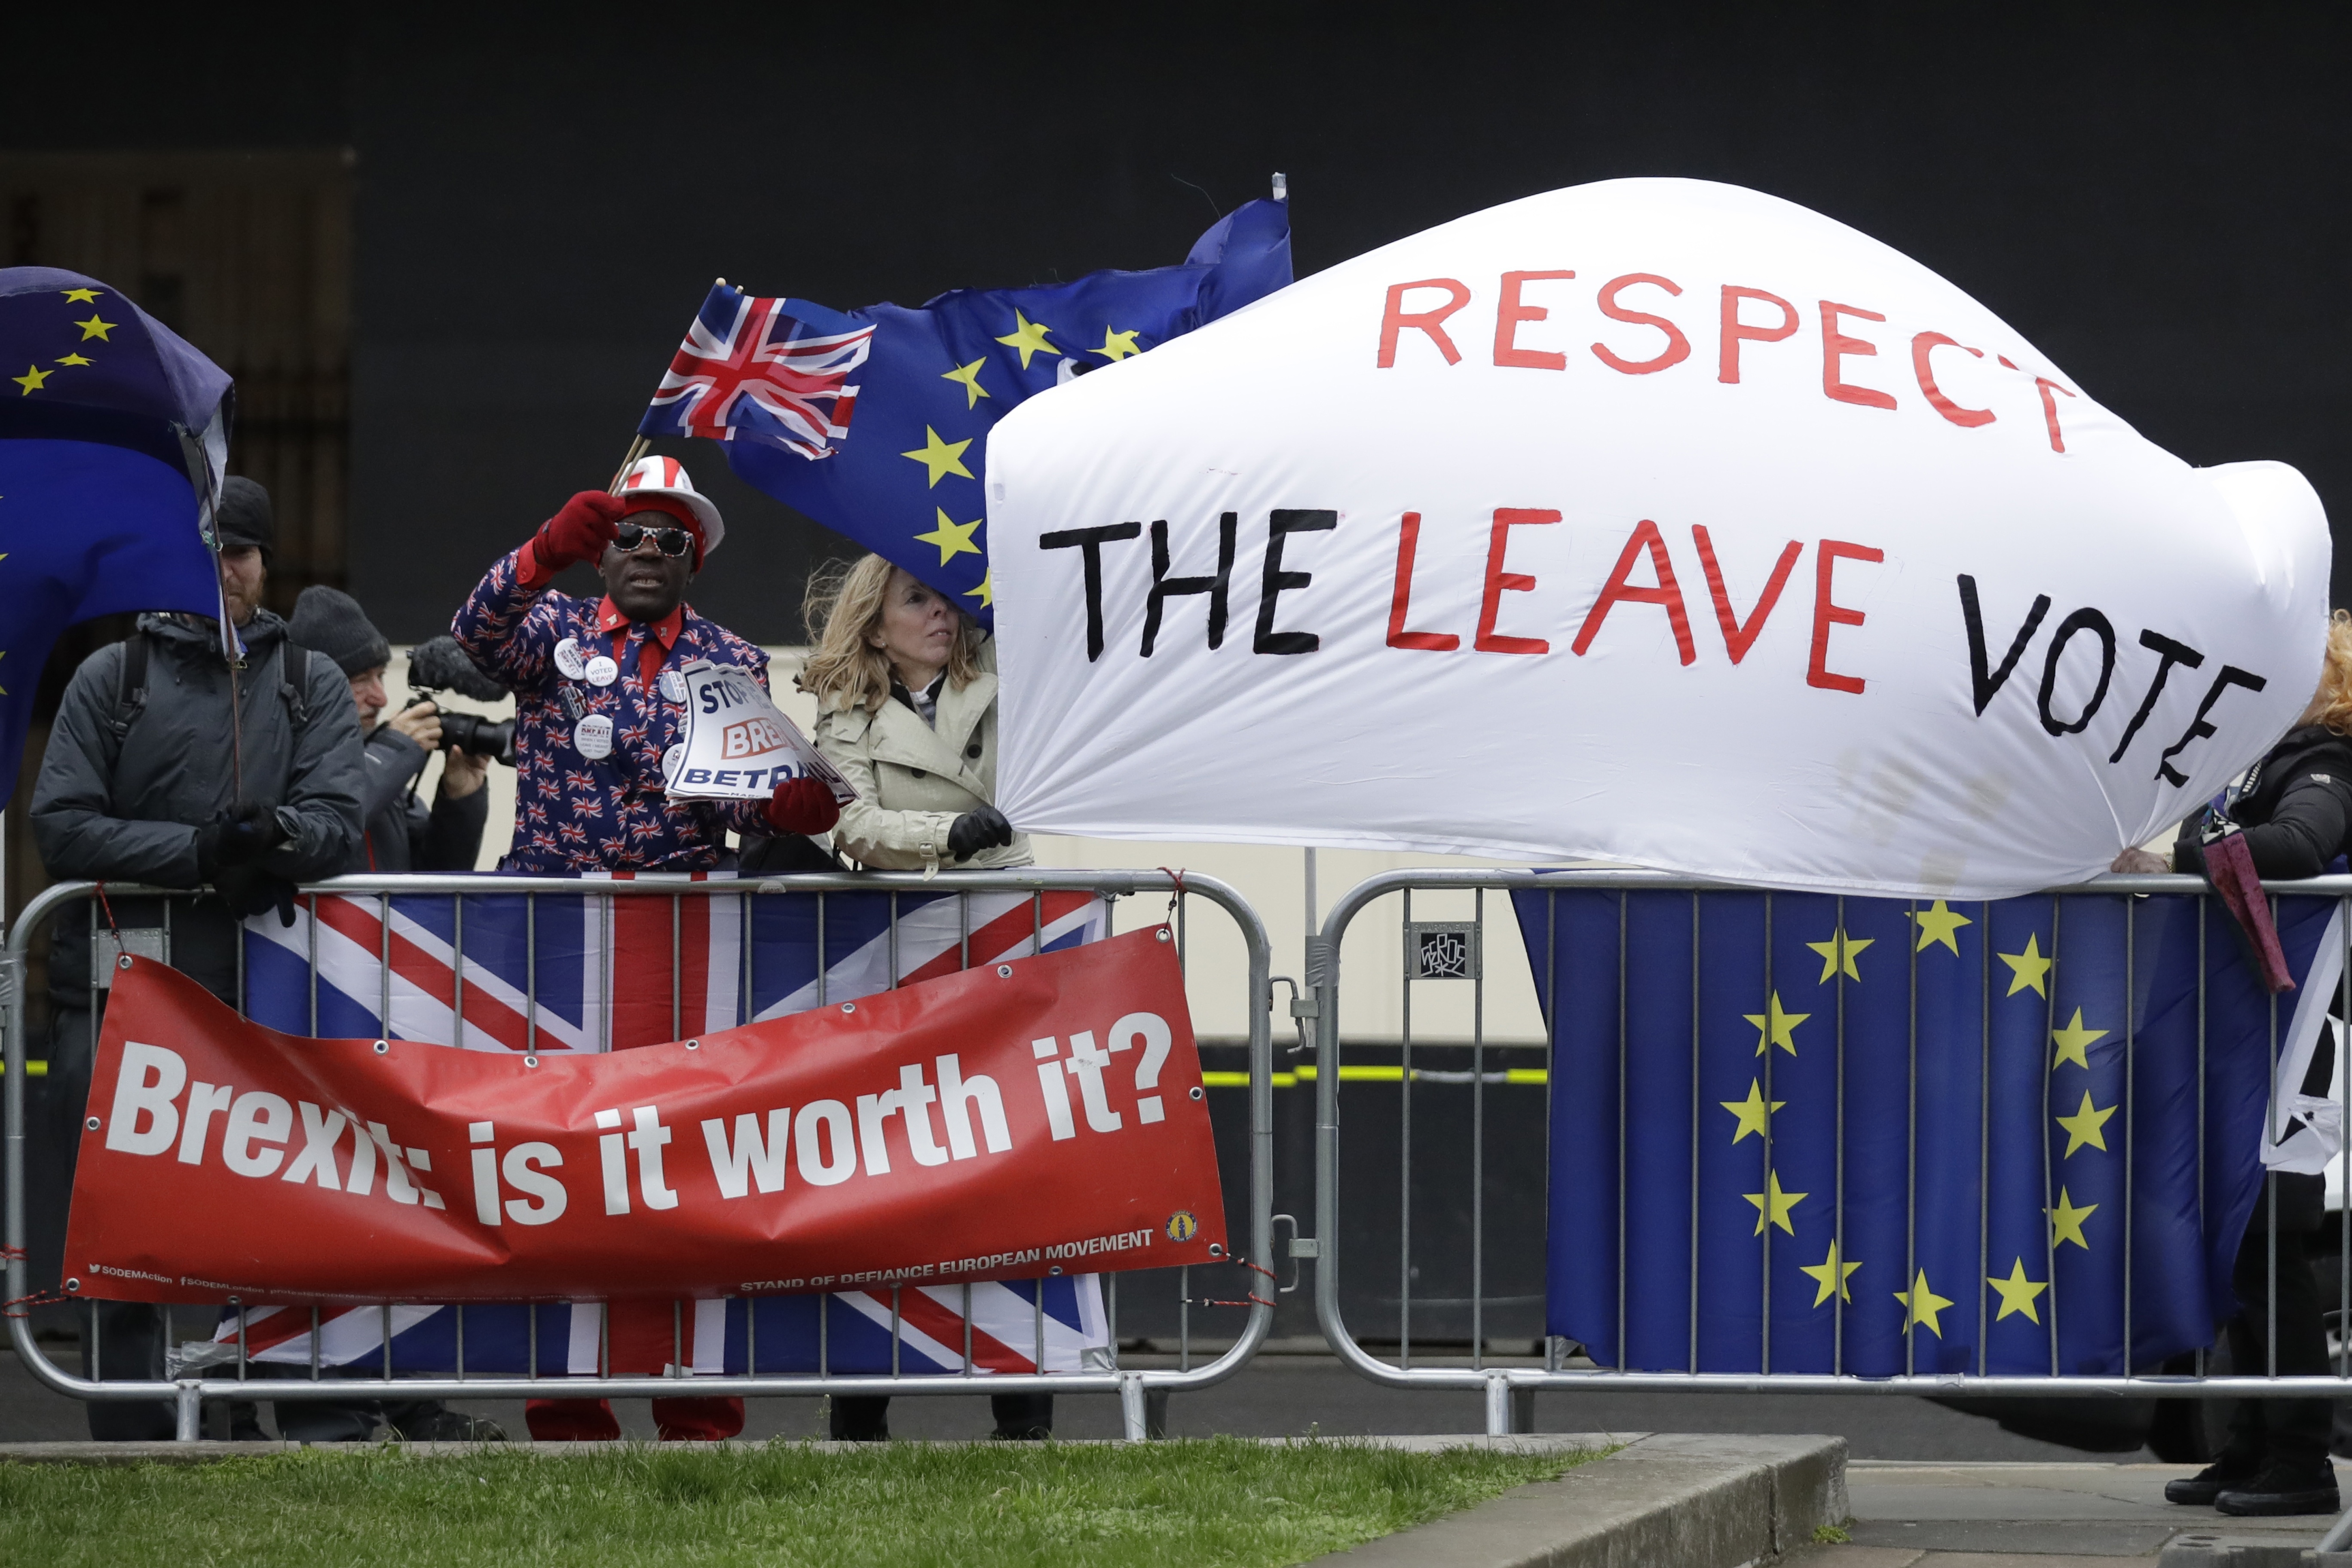 Signs of Brexit supporters and opponents are seen outside the Houses of Parliament in London, Britain, March 12, 2019.